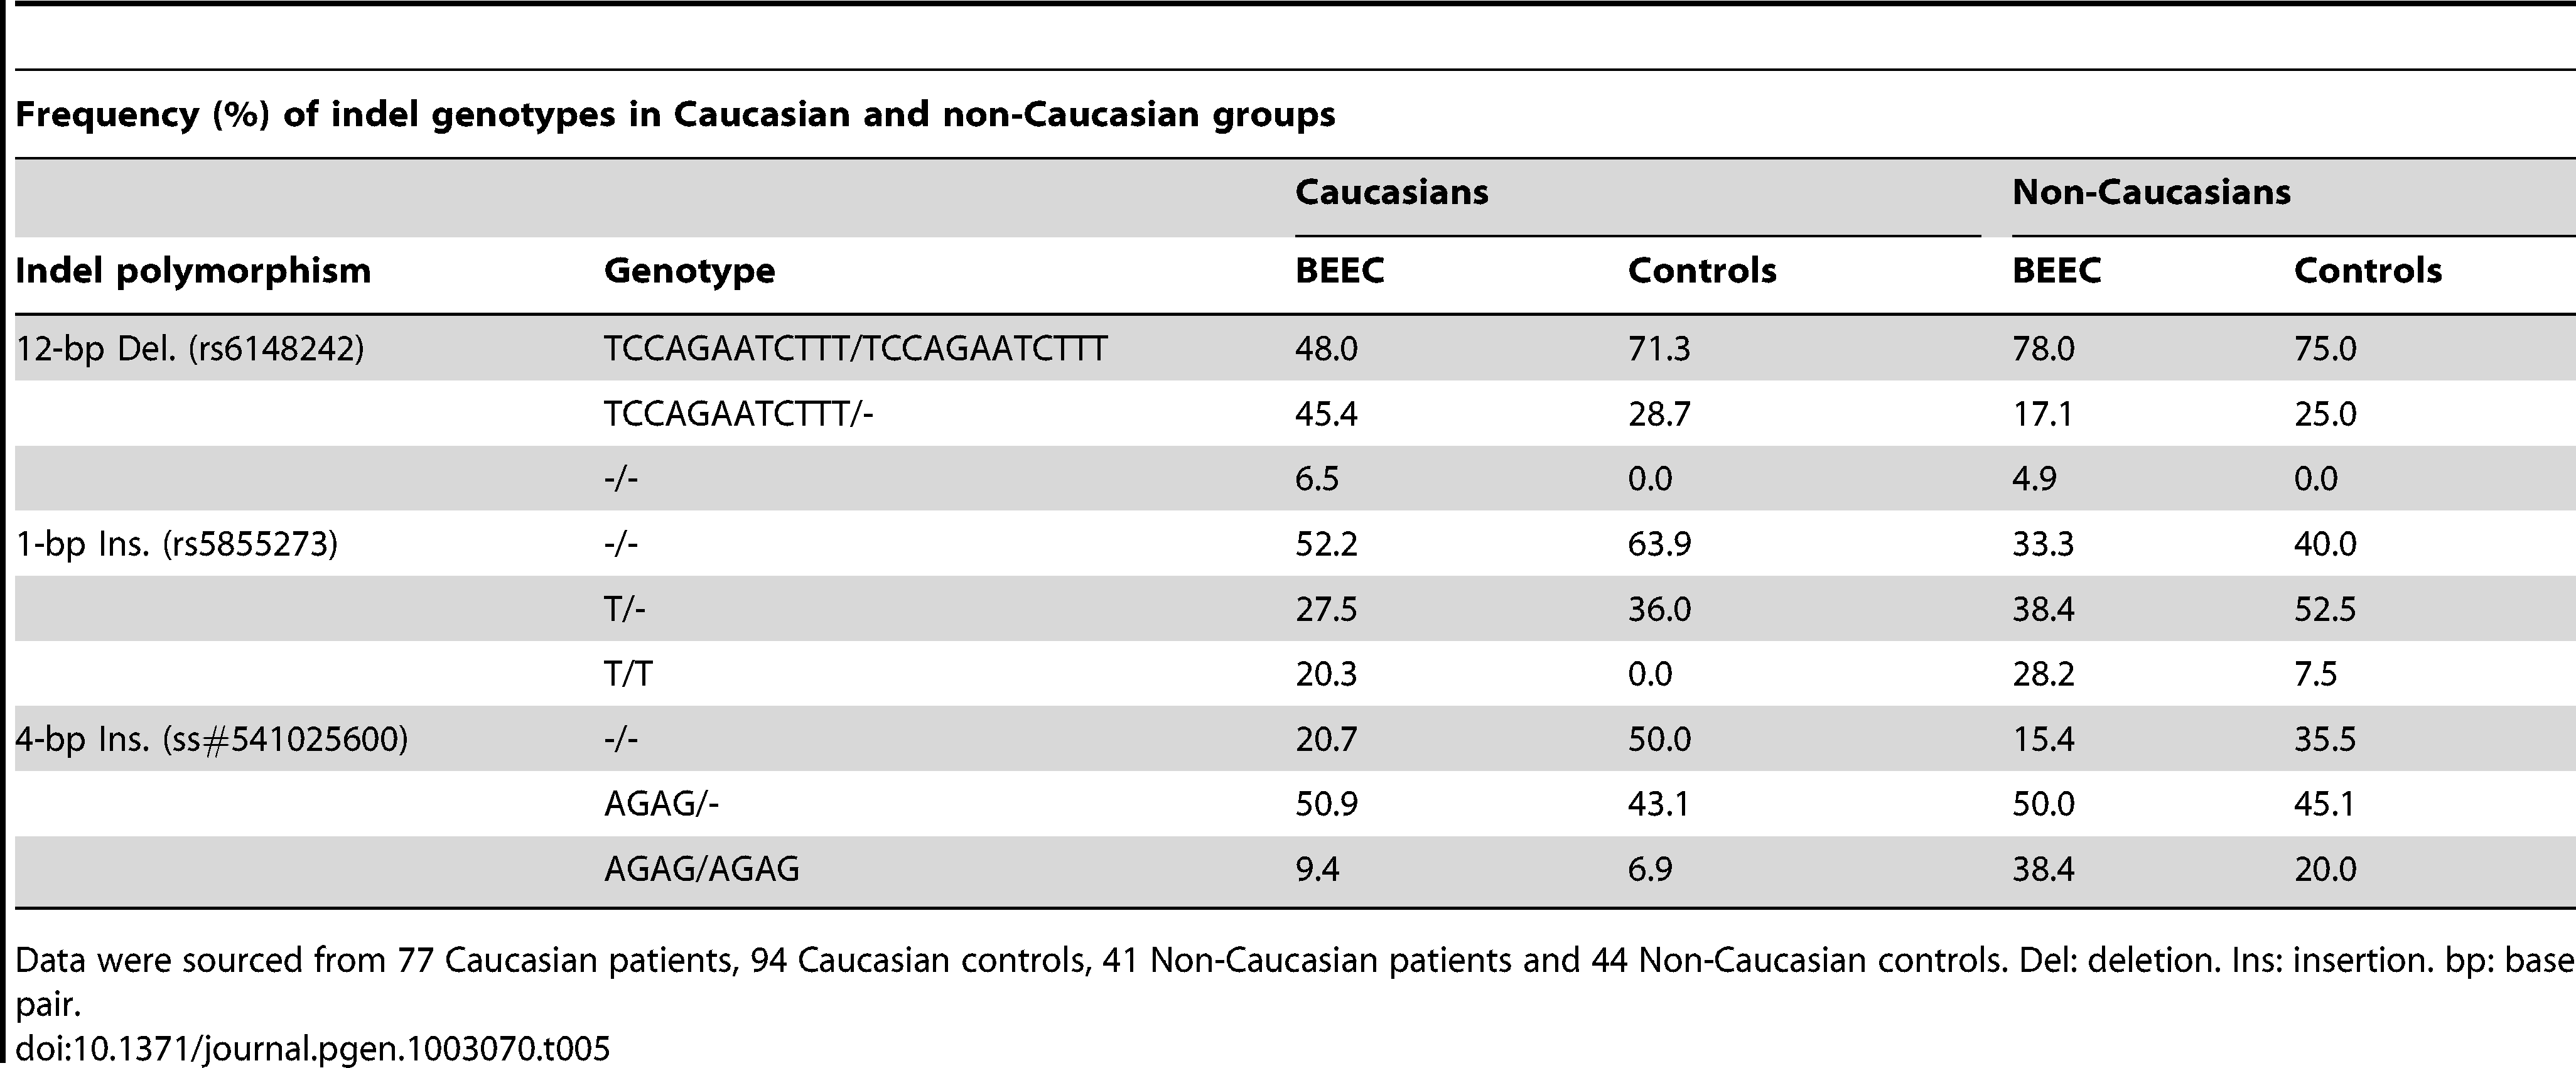 Frequency (%) of indel genotypes in Caucasian and non-Caucasian groups.